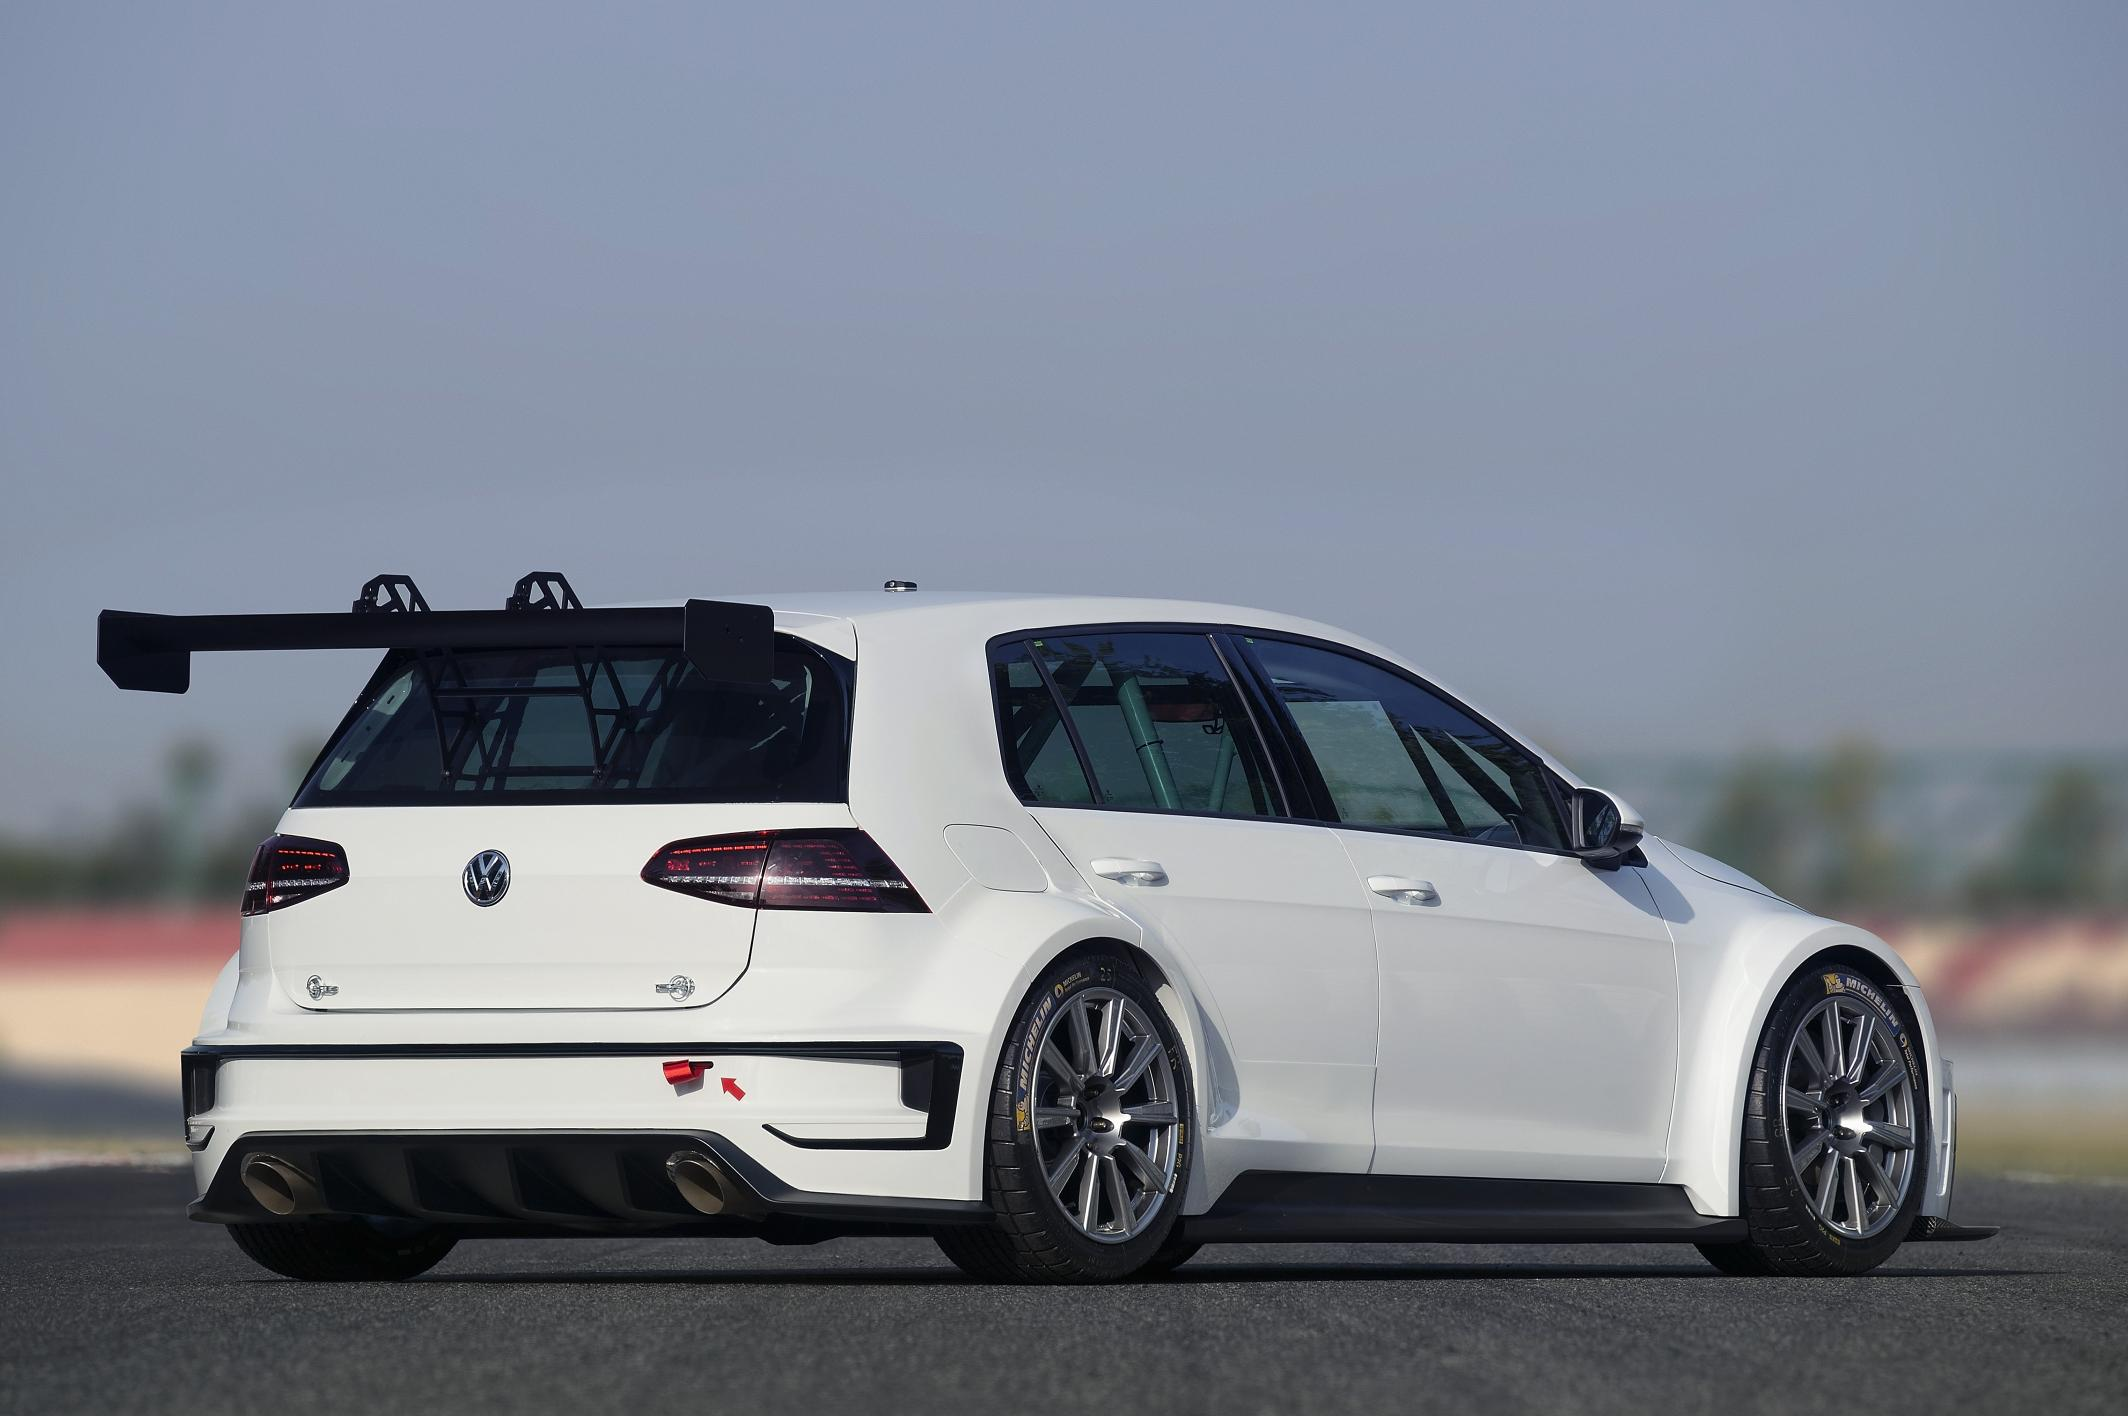 Volkswagen Unveils Golf Racecar With 330 Hp Based On